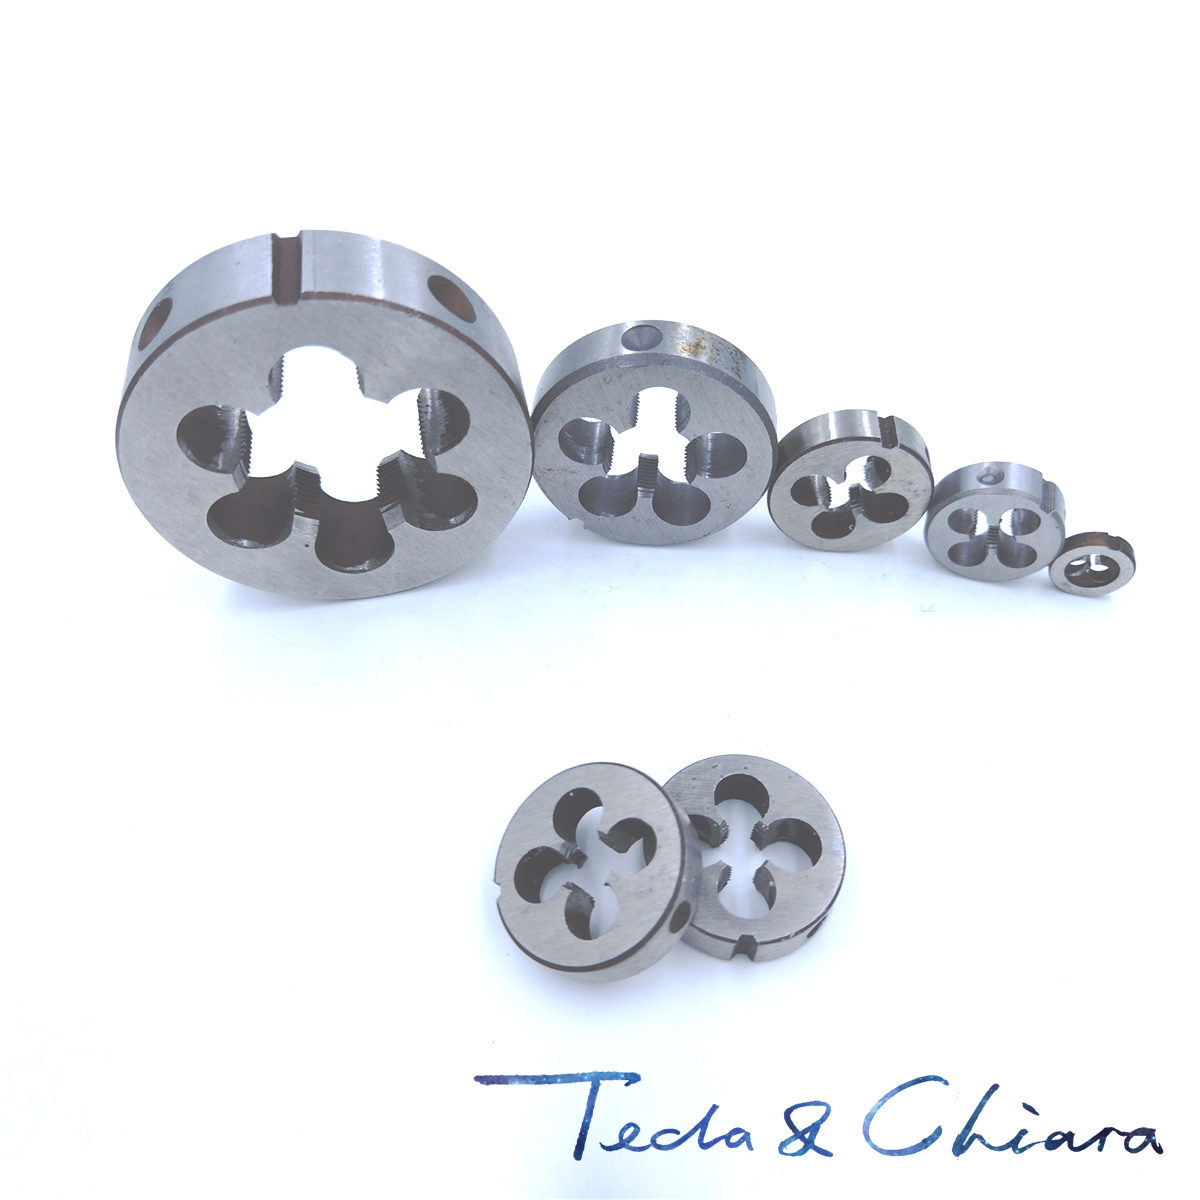 1Pc M5.5 M6 X 0.5mm 0.75mm 1mm Metric Right Hand Die Pitch Threading Tools For Mold Machining * 0.5 0.75 1